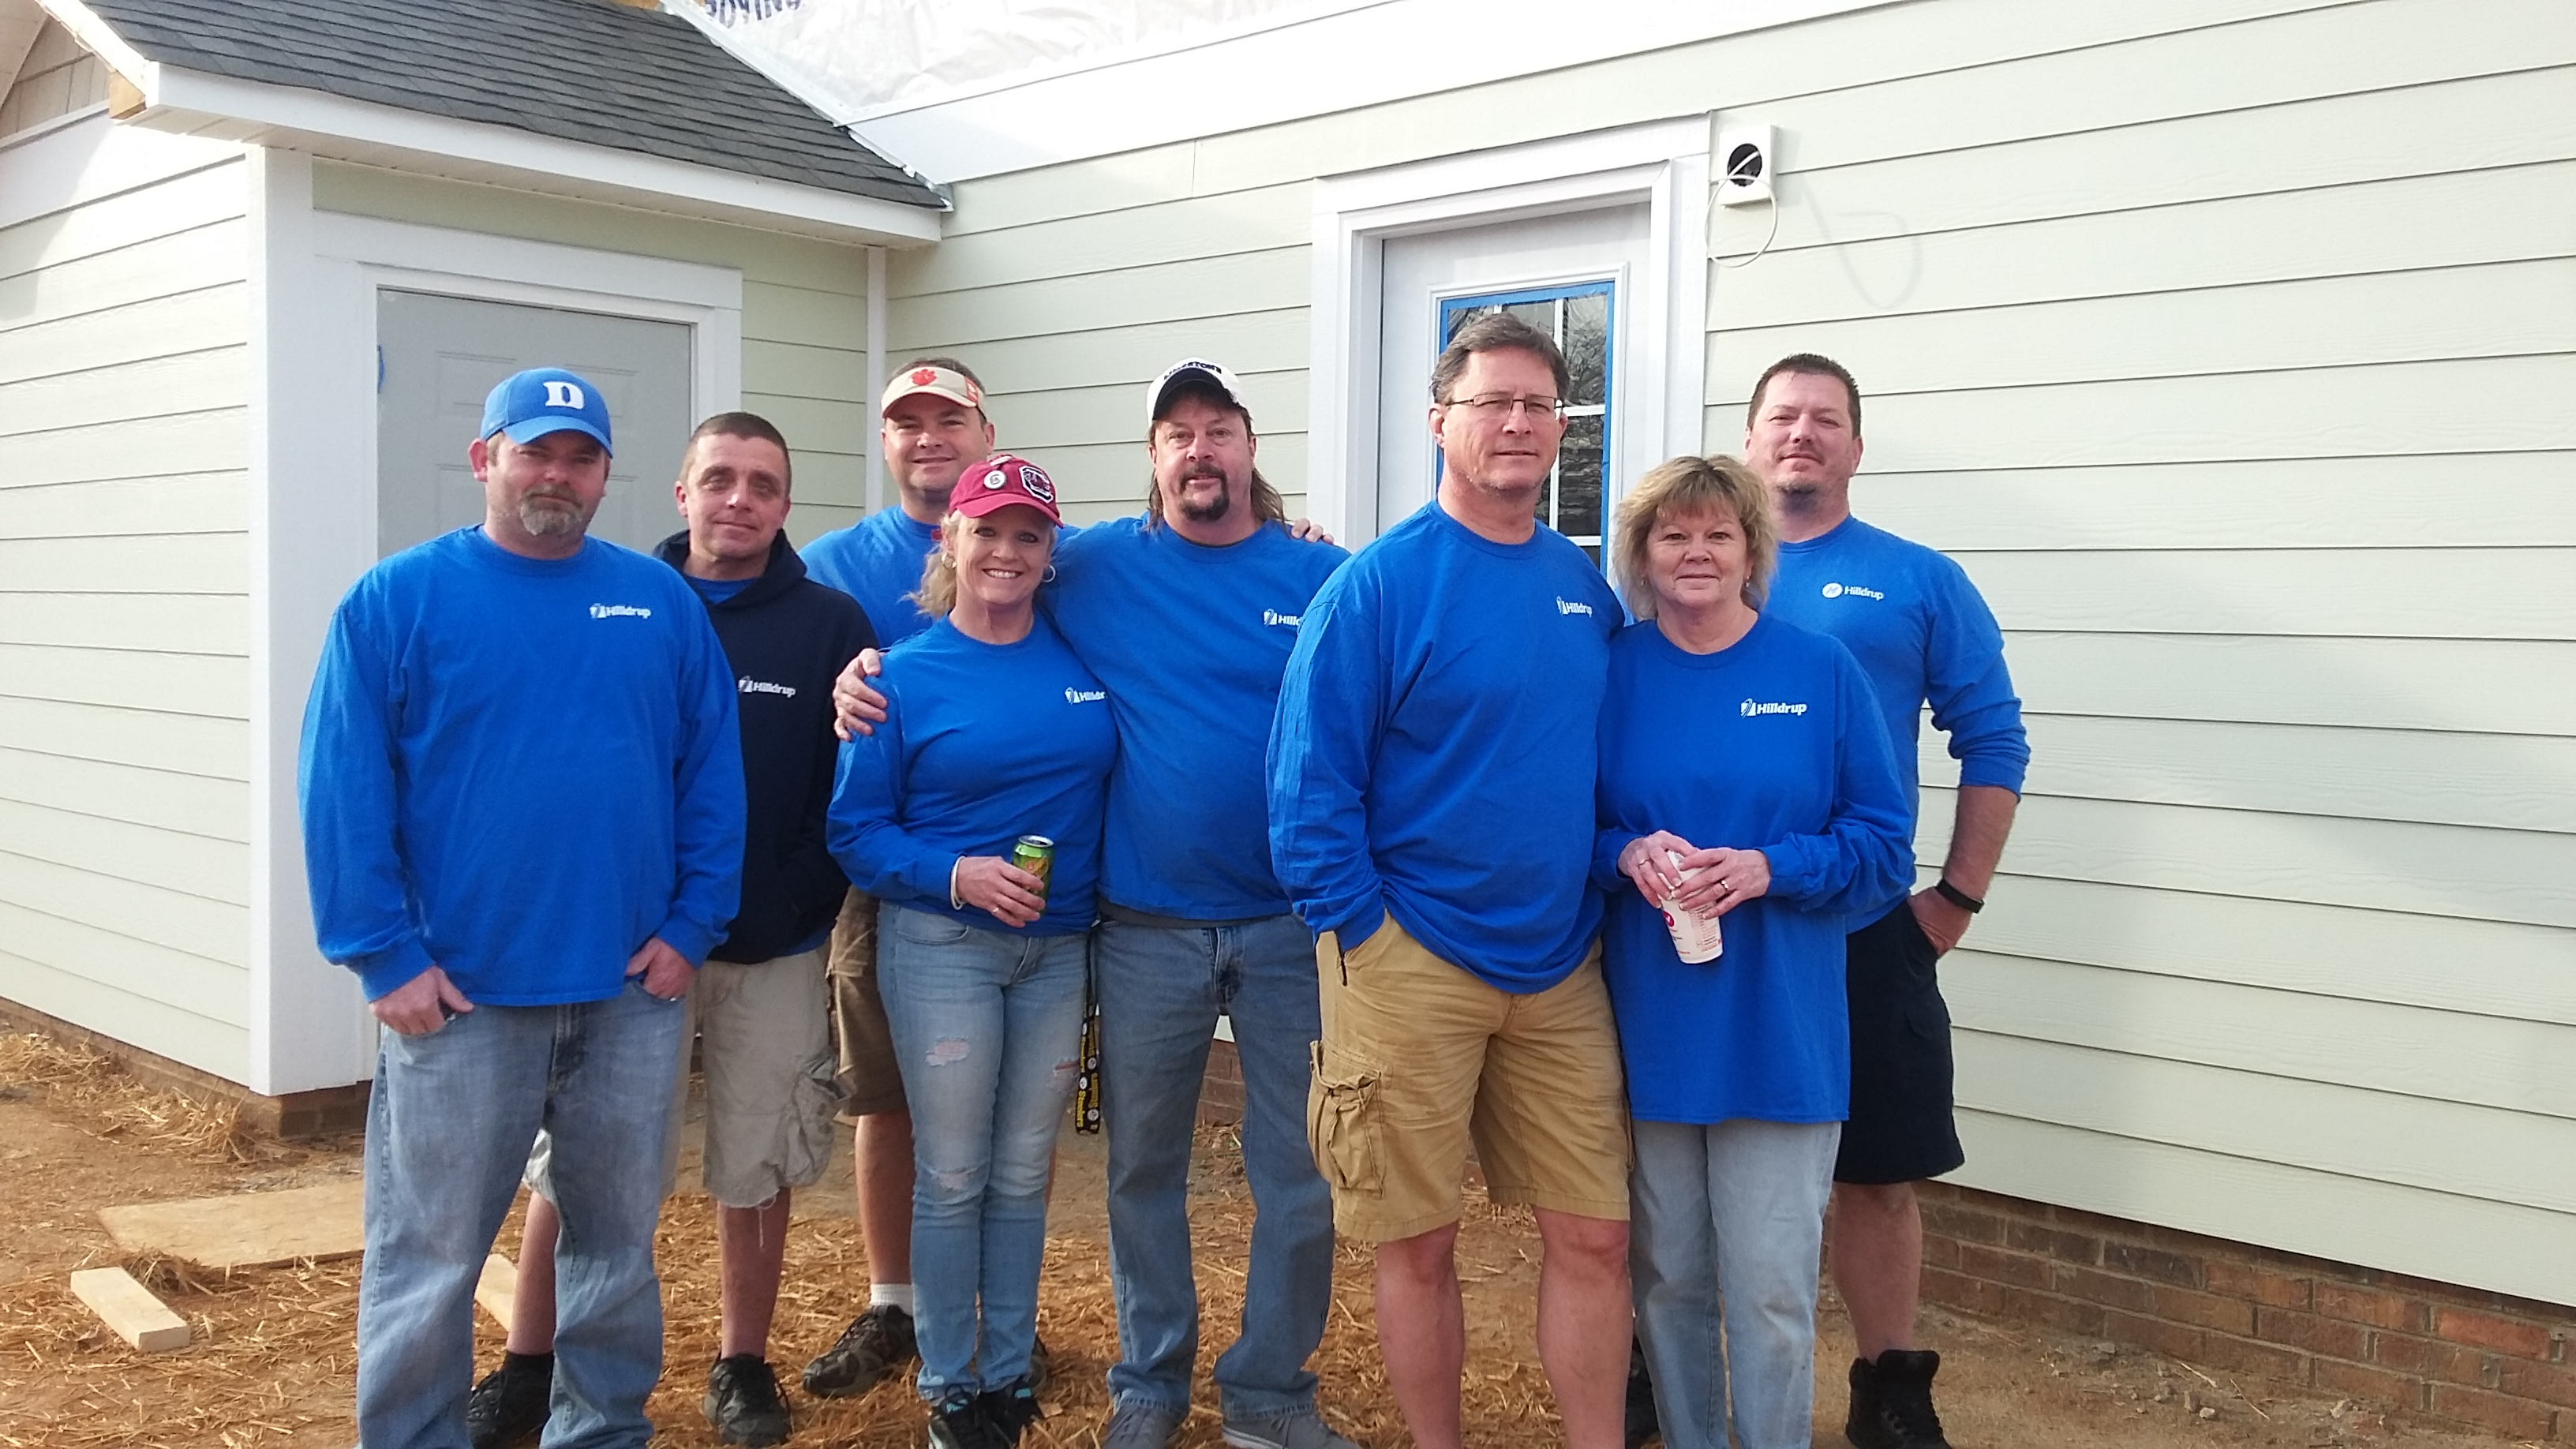 Team assisting with building a home